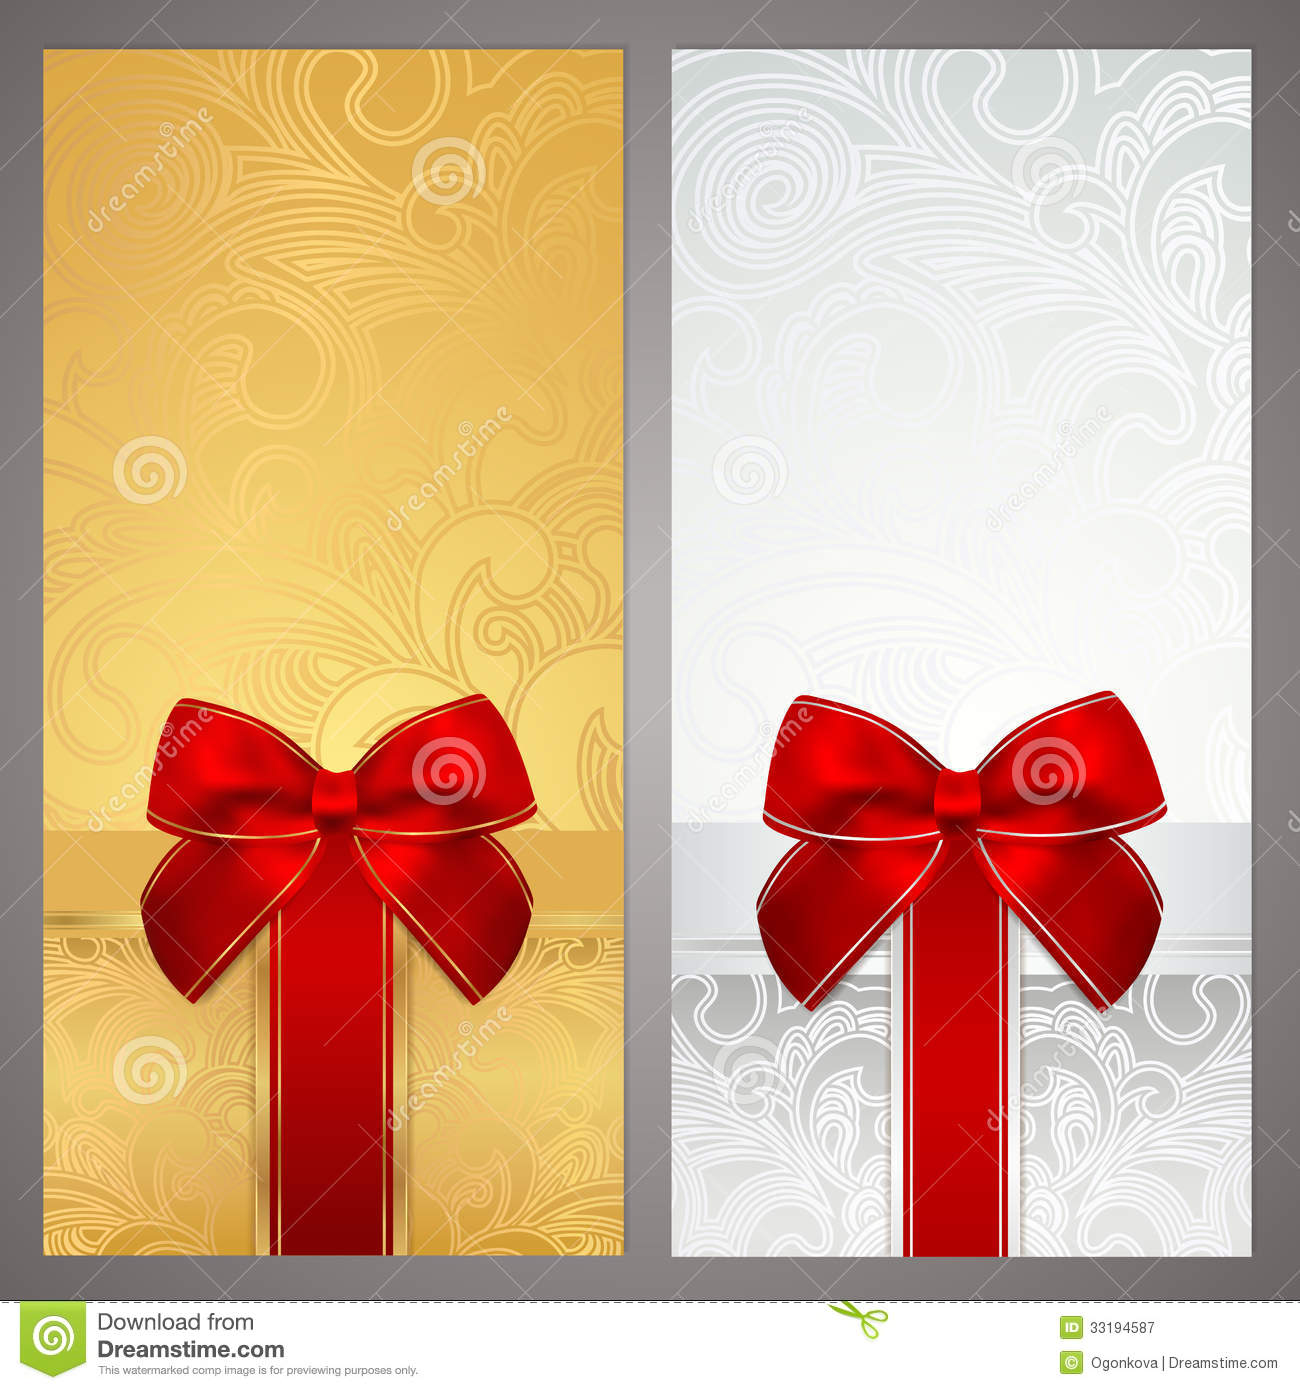 Voucher Gift Certificate Coupon Boxes Bow Illustration – Free Holiday Gift Certificate Templates